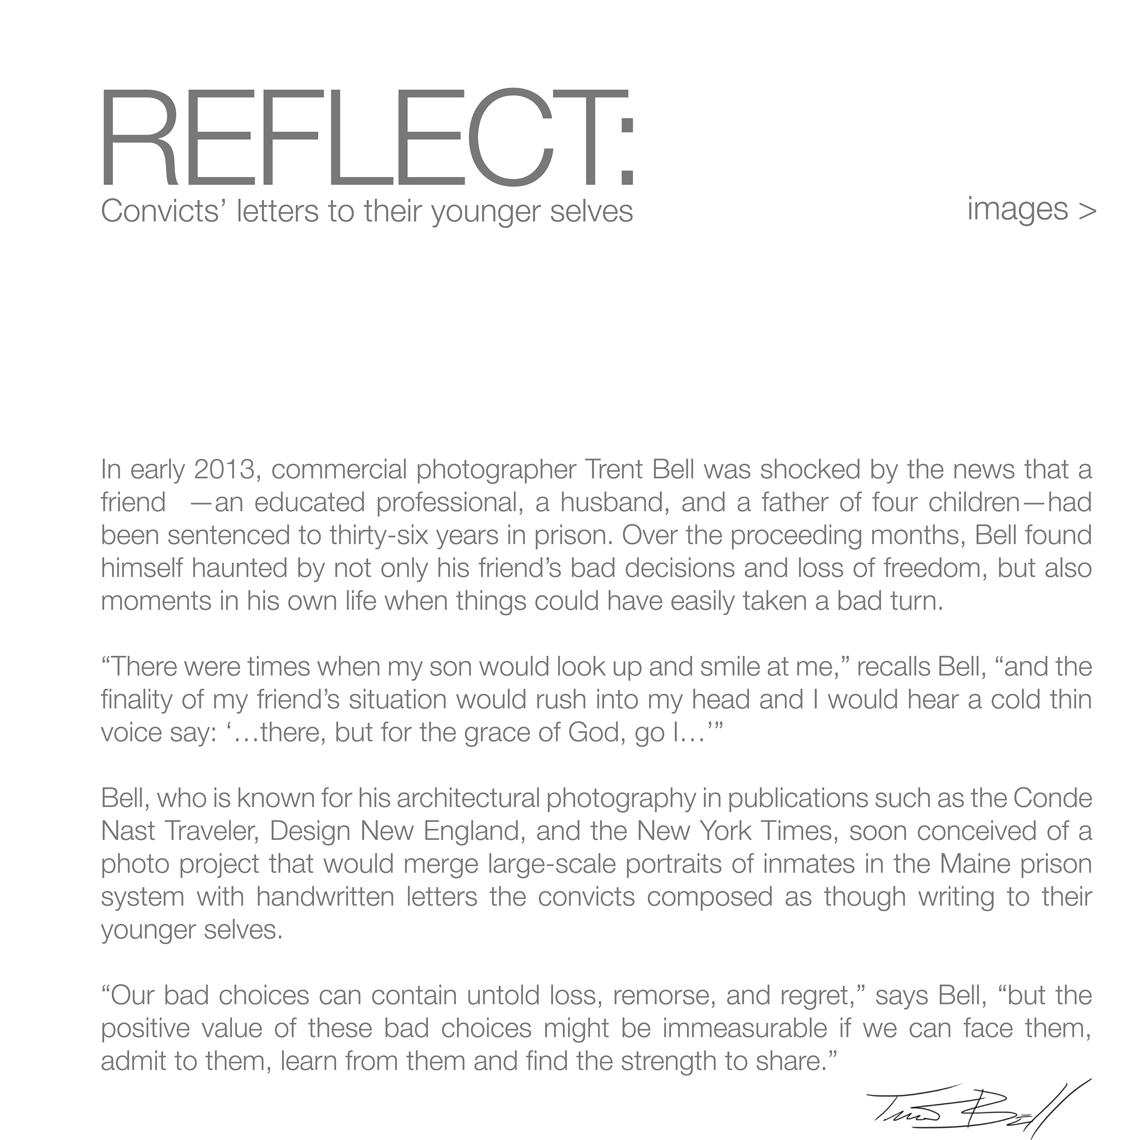 The Reflect Project